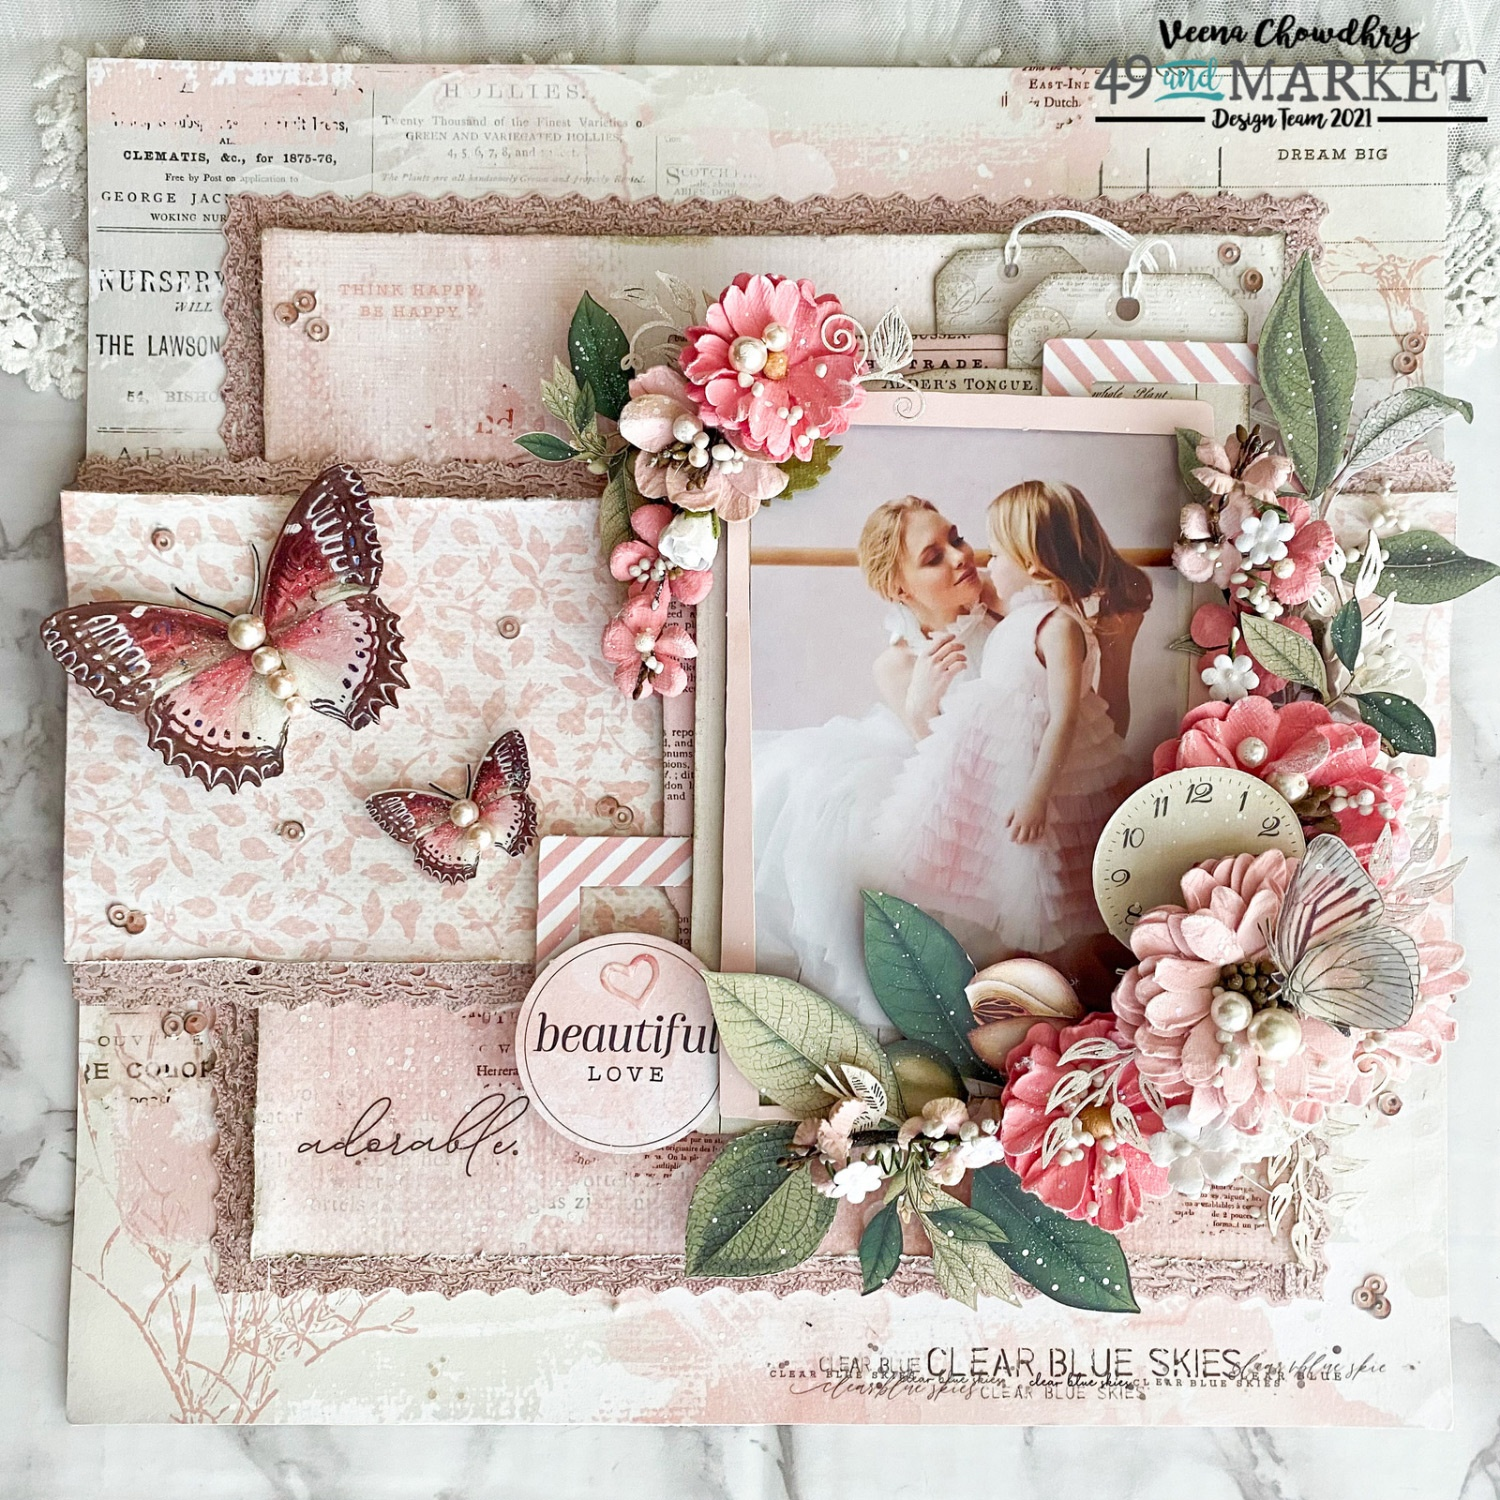 Beautiful Love - Layout by Veena Chowdhry